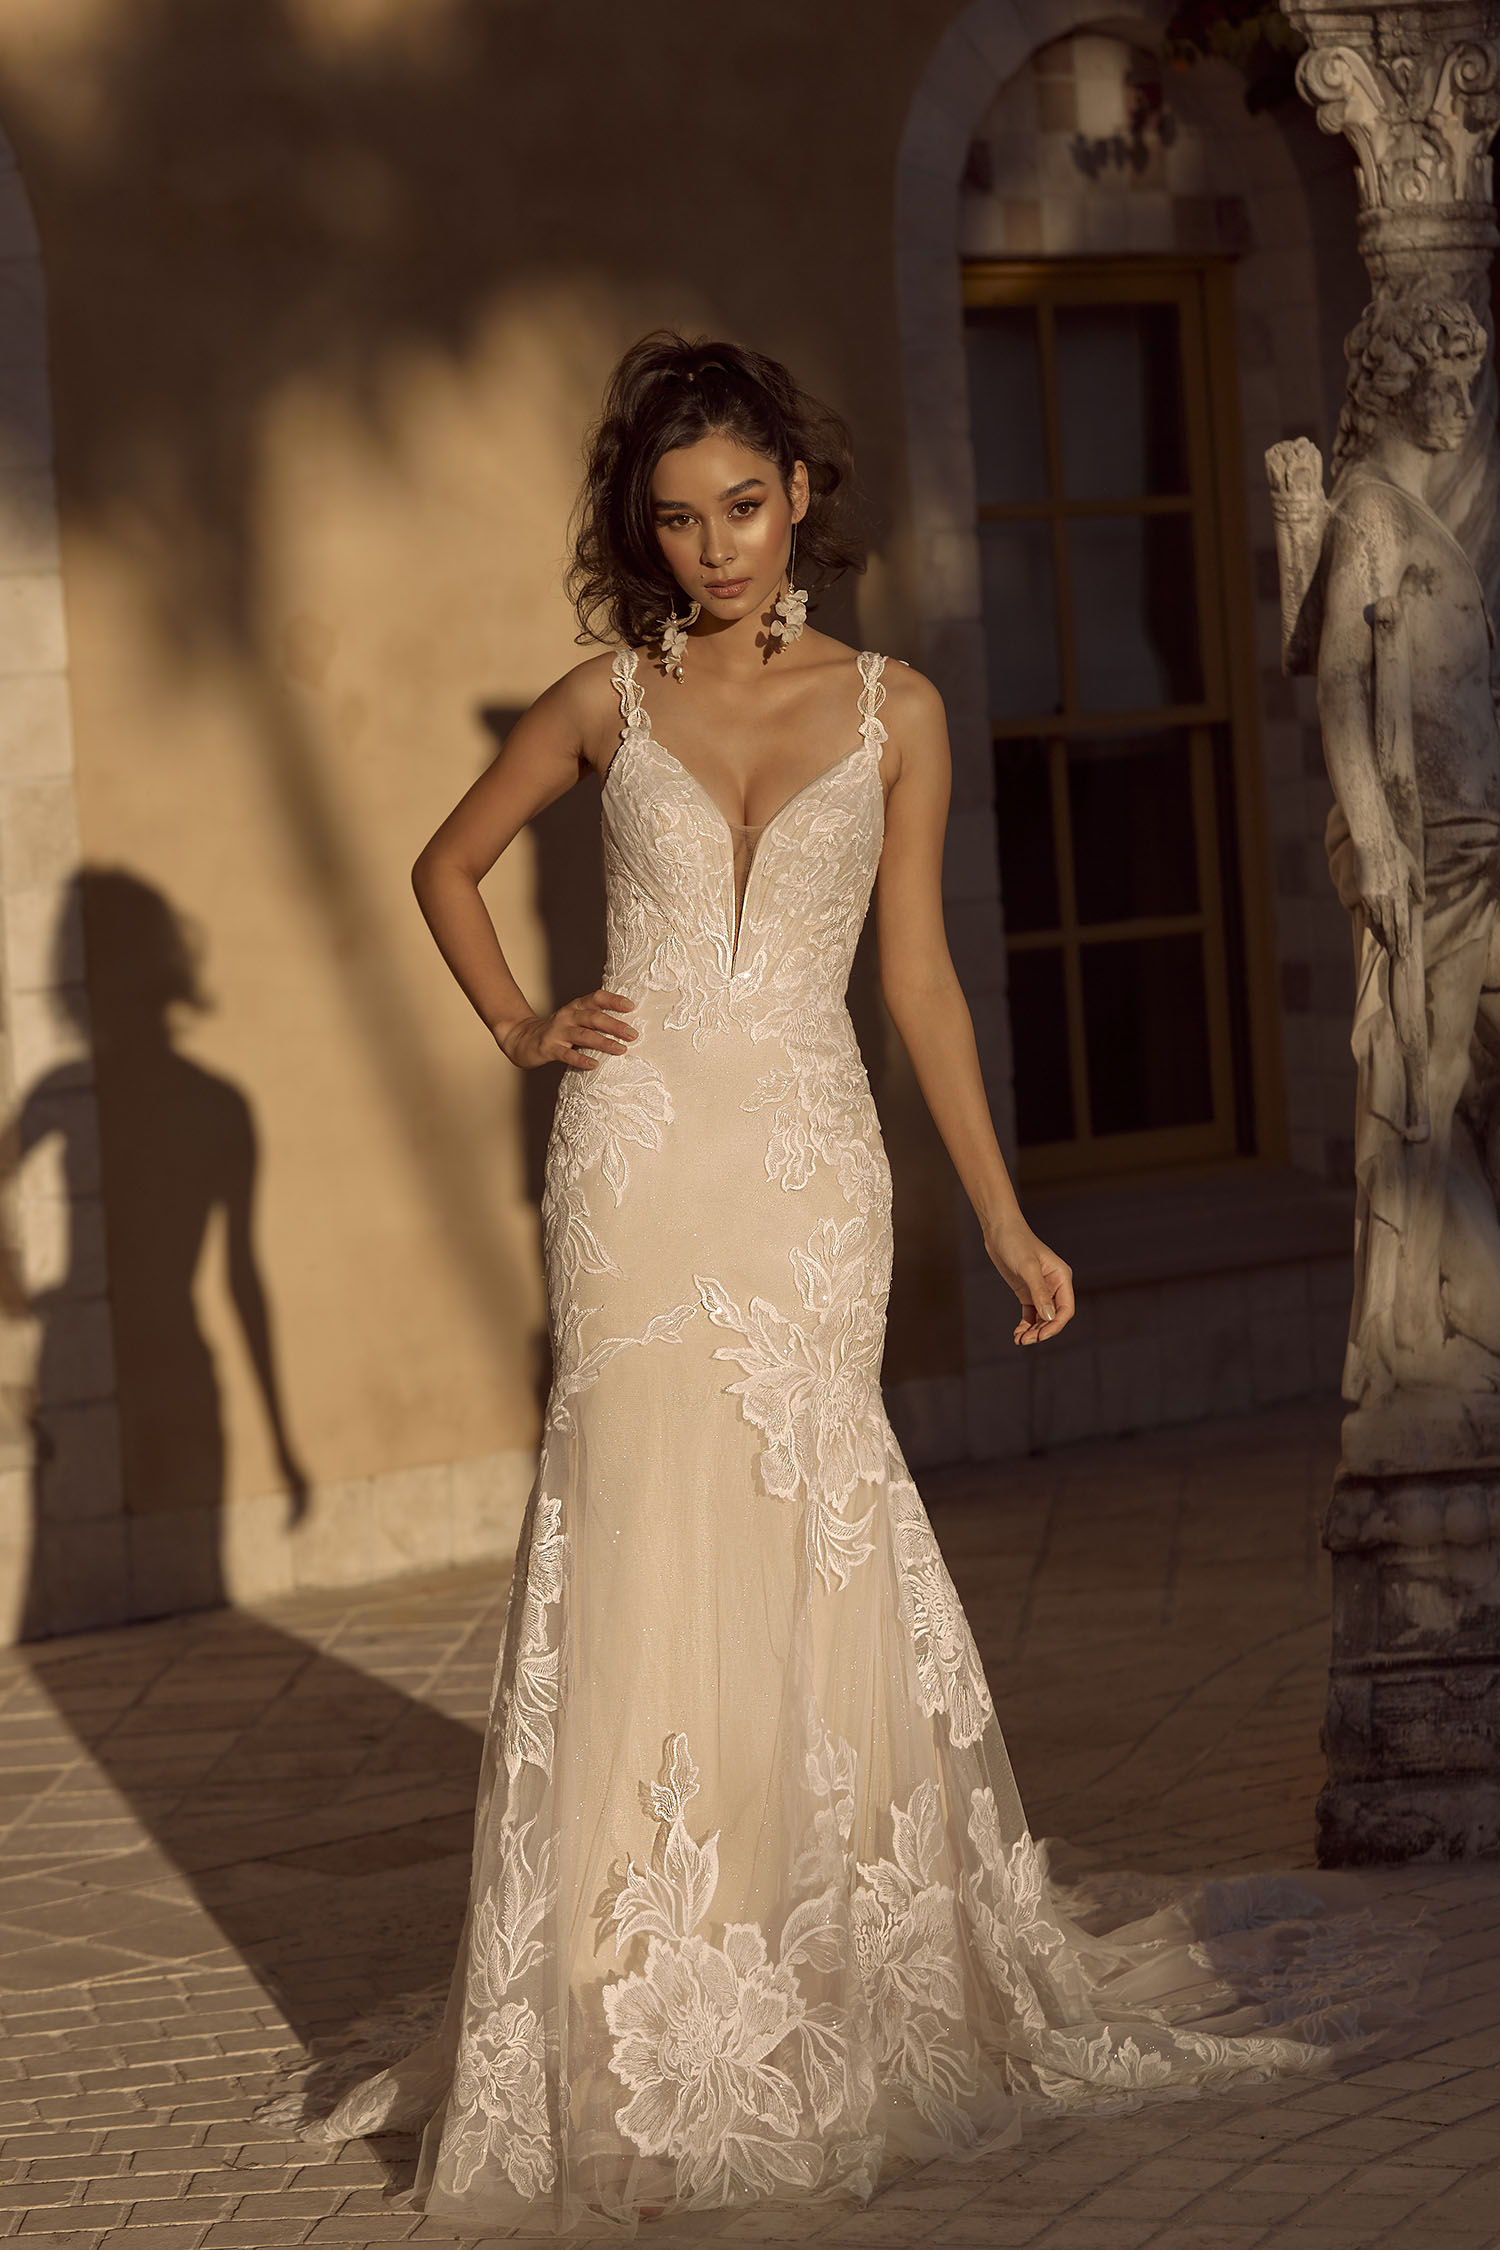 BLAIR ML19017GT FULL LENGTH FIT FLARE SILHOUETTE LOW PLUNGING V NECKLINE WITH EMBROIDERED SEQUINED LACE AND MIRROR BACK FINISH WEDDING DRESS MADI LANE BRIDAL3